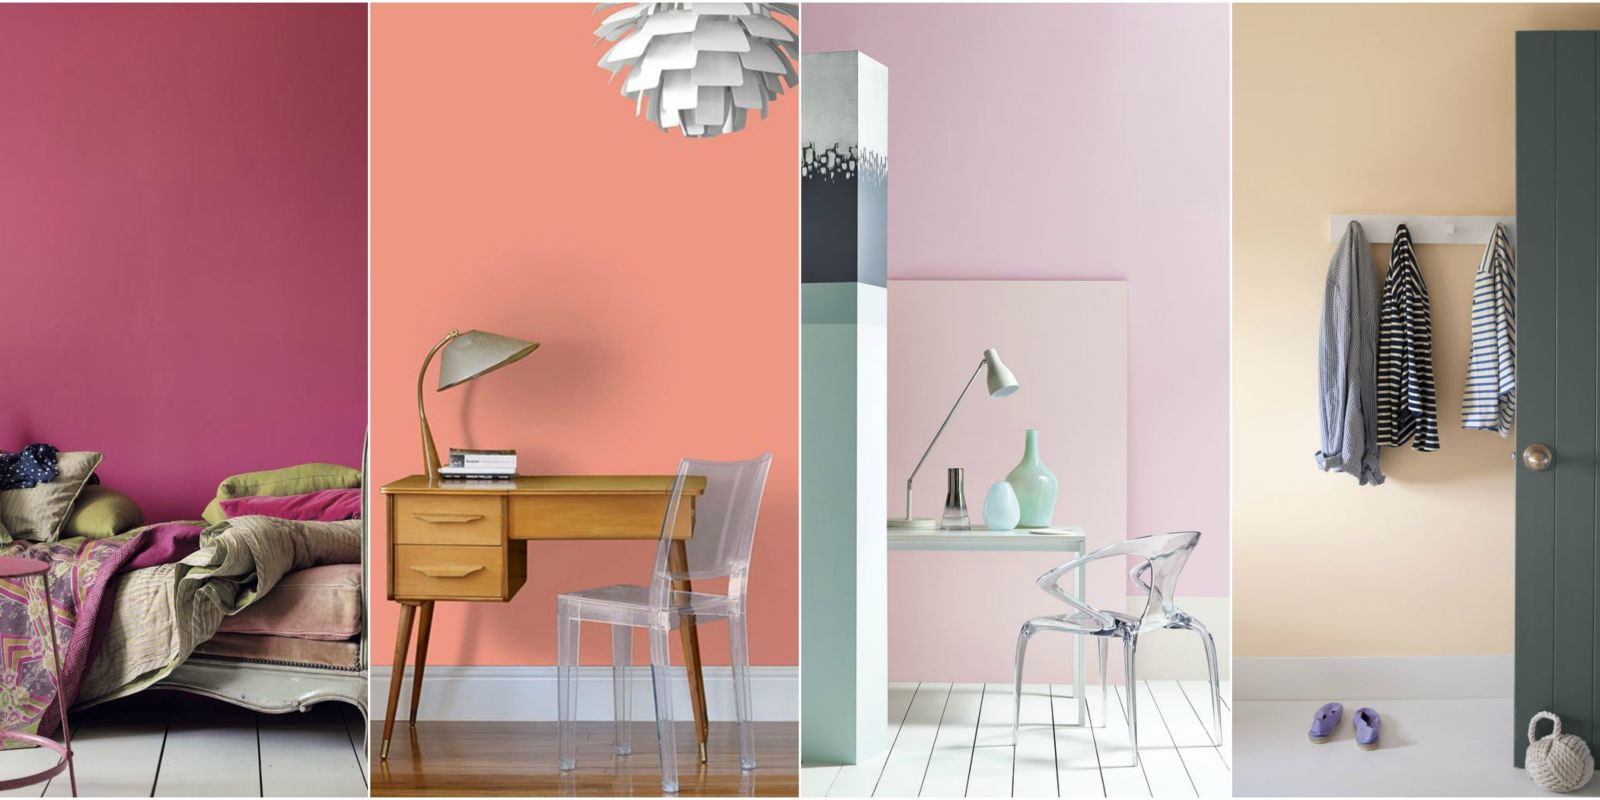 Paint shades how to use gorgeous shades of pink in your home for What type of paint to use on bedroom walls